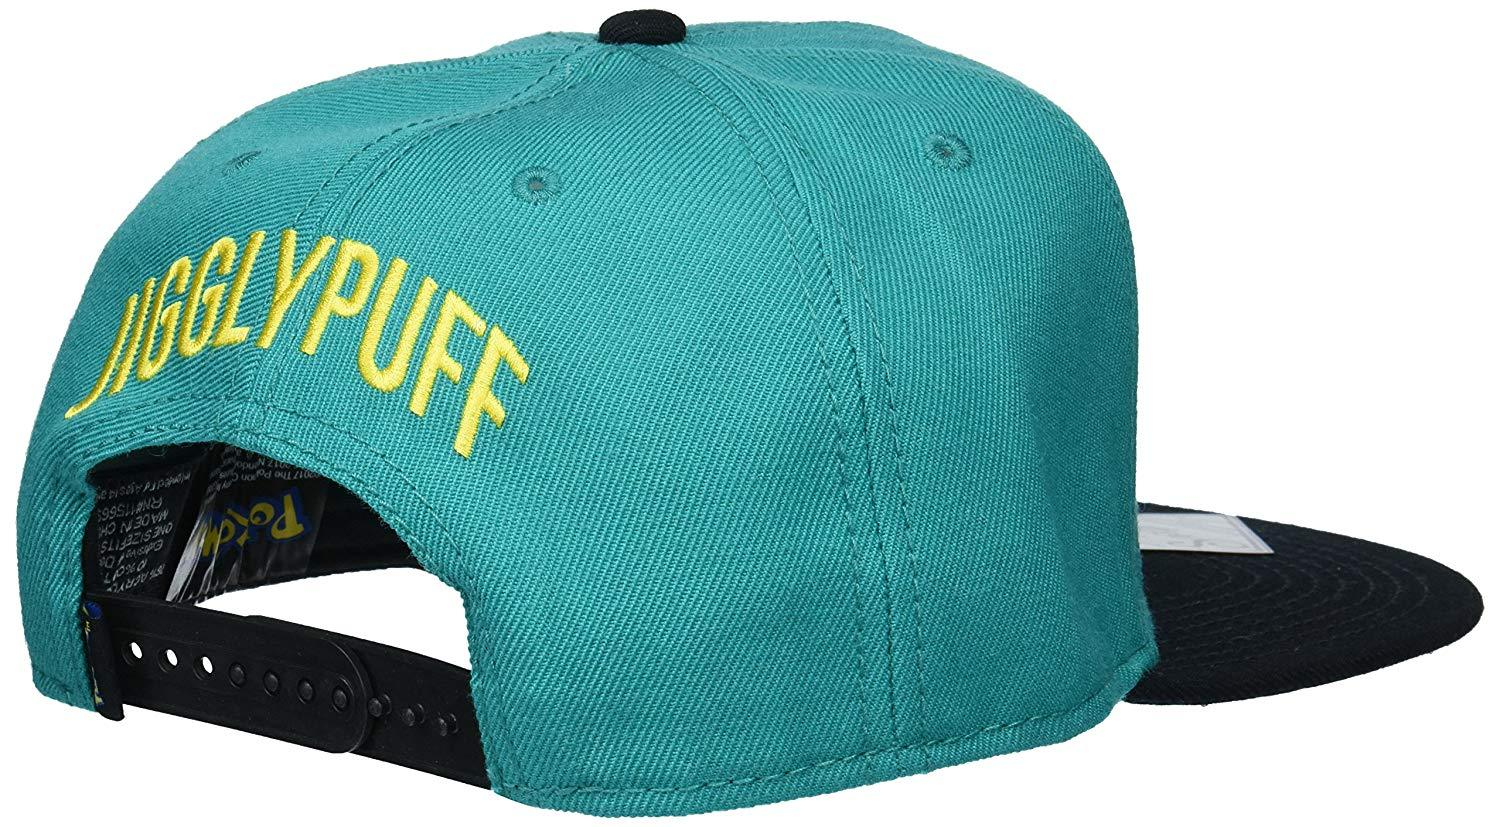 49a7f1a4f995db Pokemon - Jigglypuff Embroidered Turquoise Snapback - Dood Gear